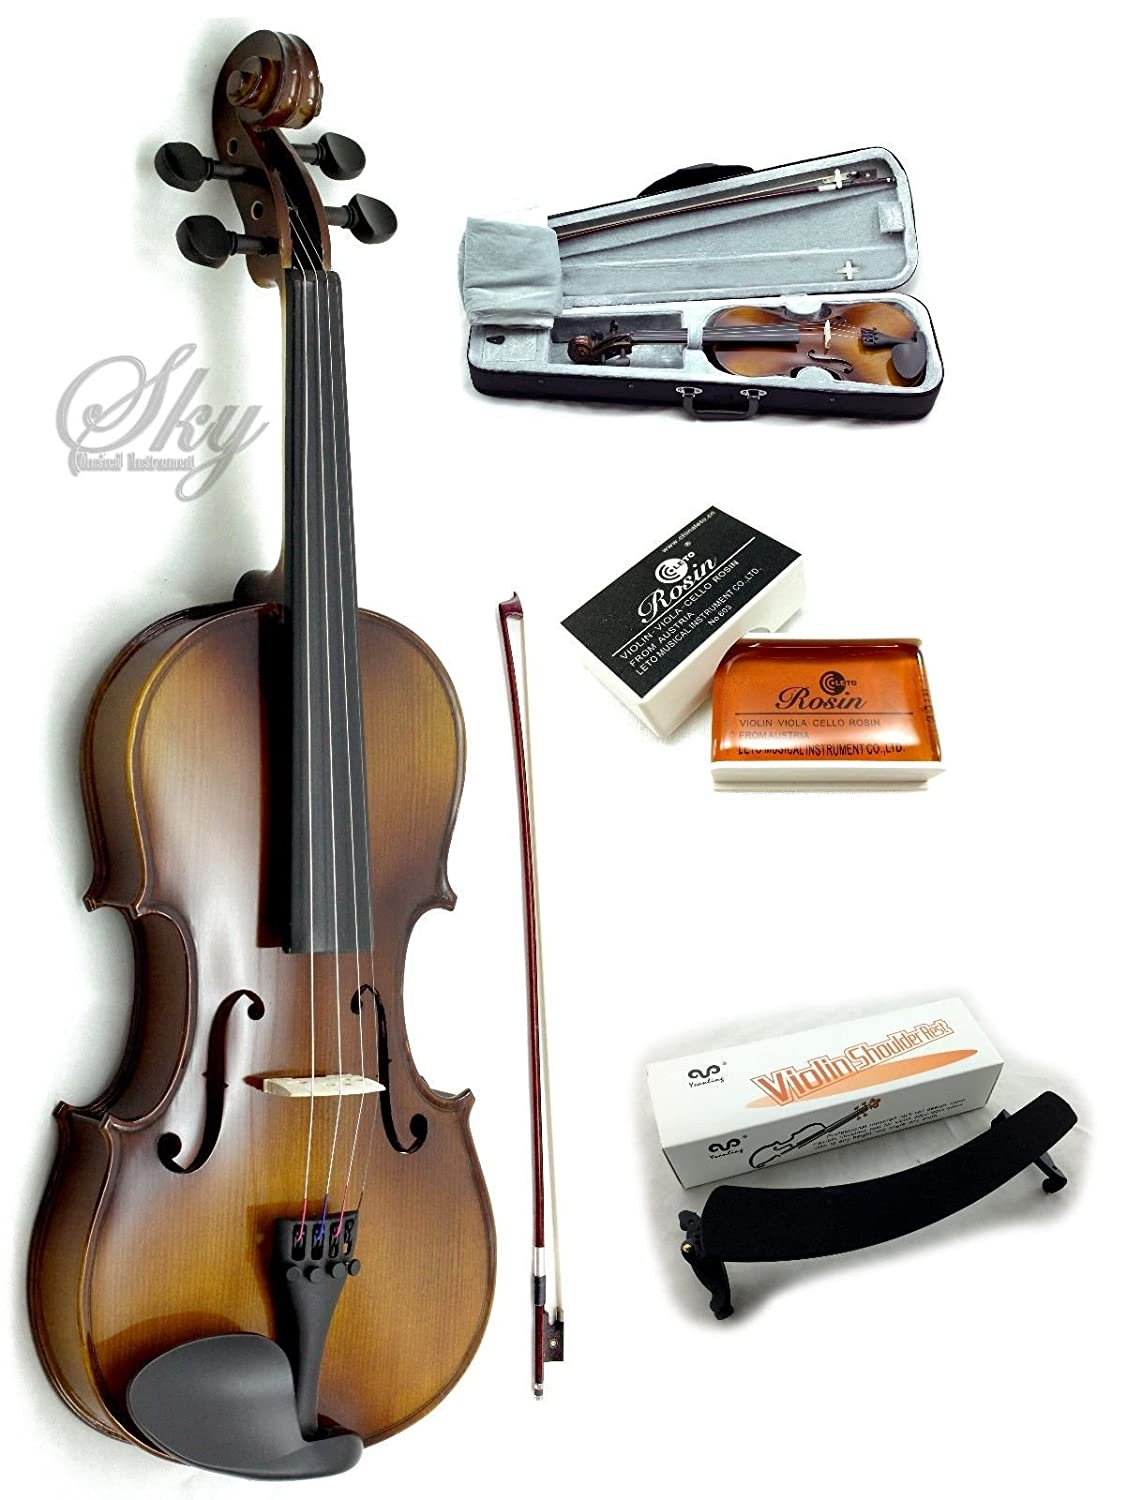 Sky Brand New Solid Wood Antique Viola Outfit with Lightweight Case, Bow and Rosin (12 Inch)